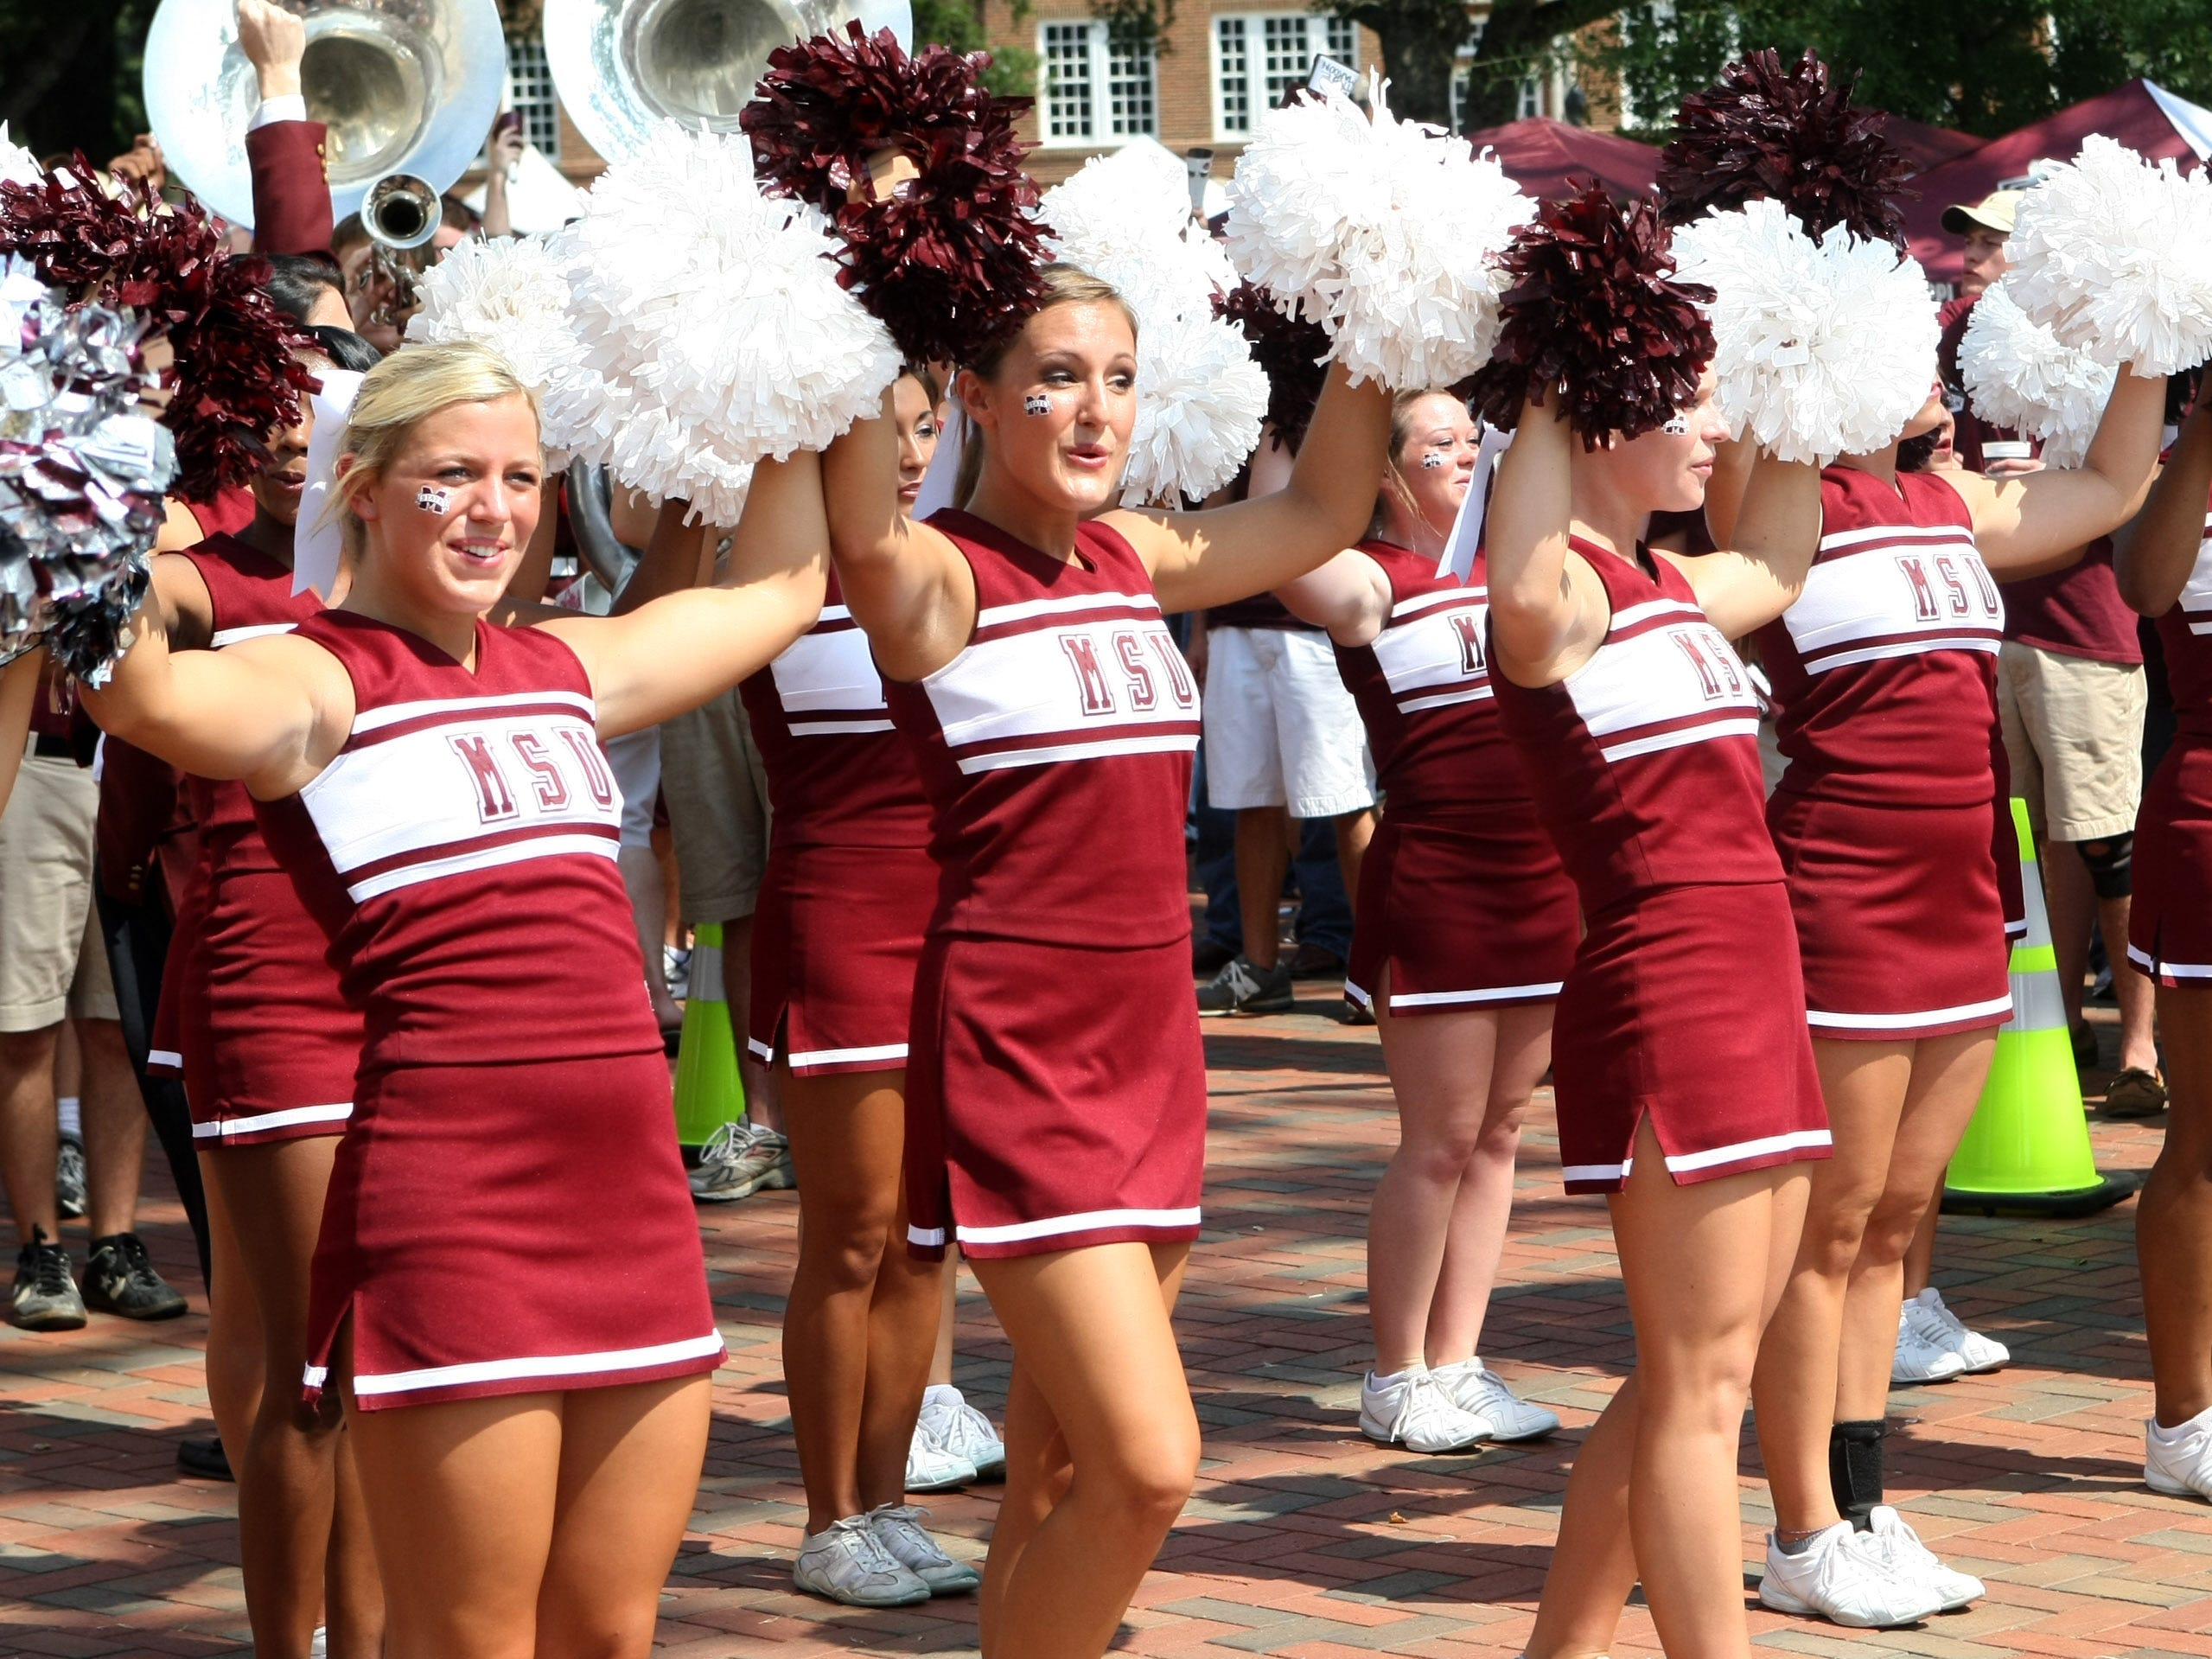 "Mississippi State cheerleaders form the 'U' of the ""We are MSU"" cheer before their NCAA college football game against Auburn in Starkville, Miss., at Davis Wade Stadium Saturday Sept. 9, 2010. (AP Photo/Kerry Smith)"